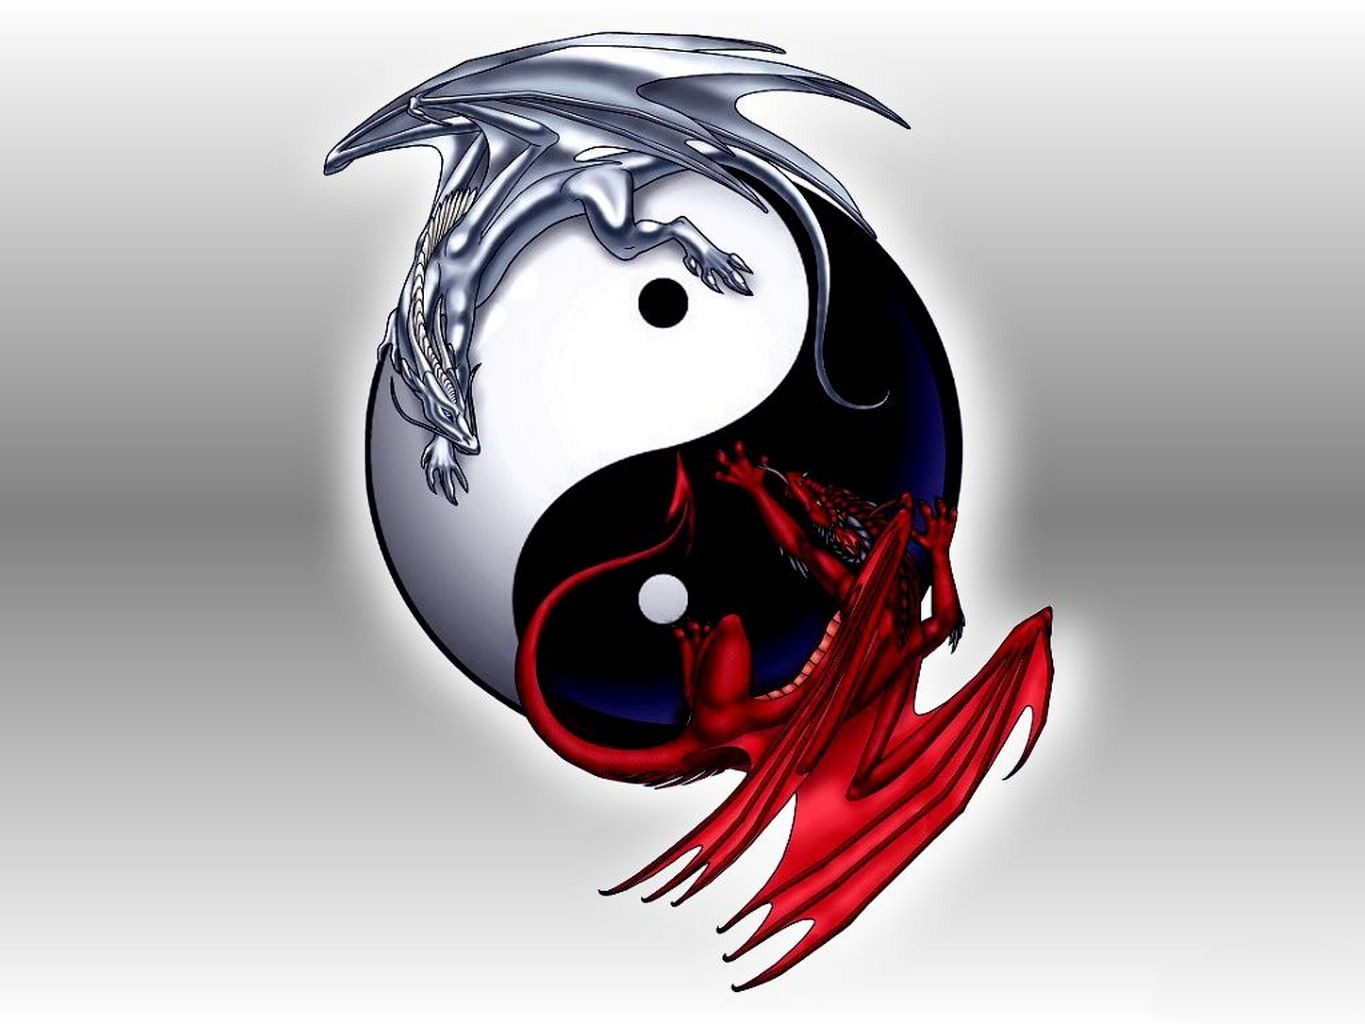 Yin And Yang IPhone Wallpapers For Free